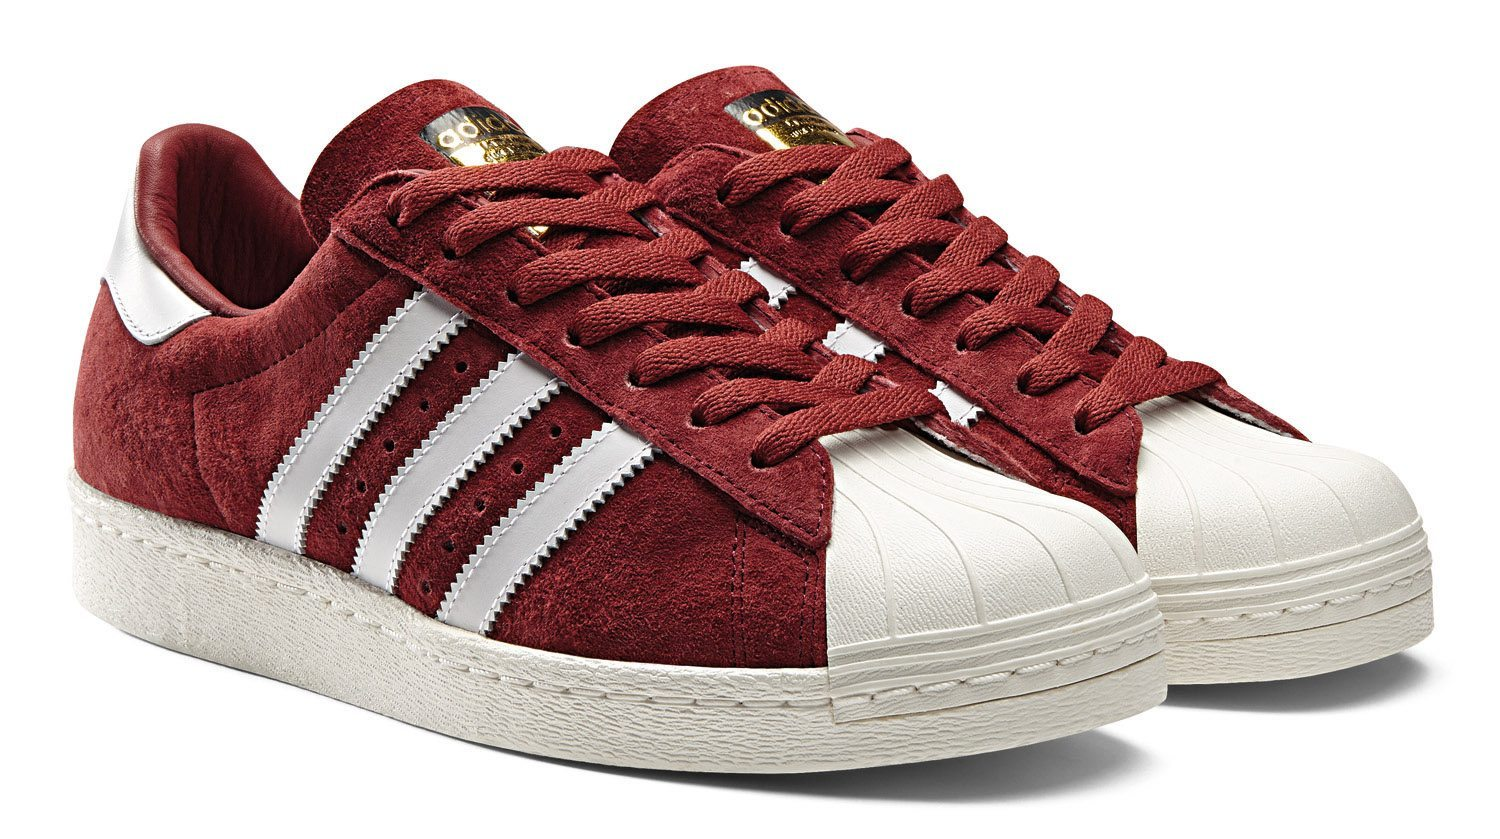 adidas Originals Superstar Suede Classics Pack 9